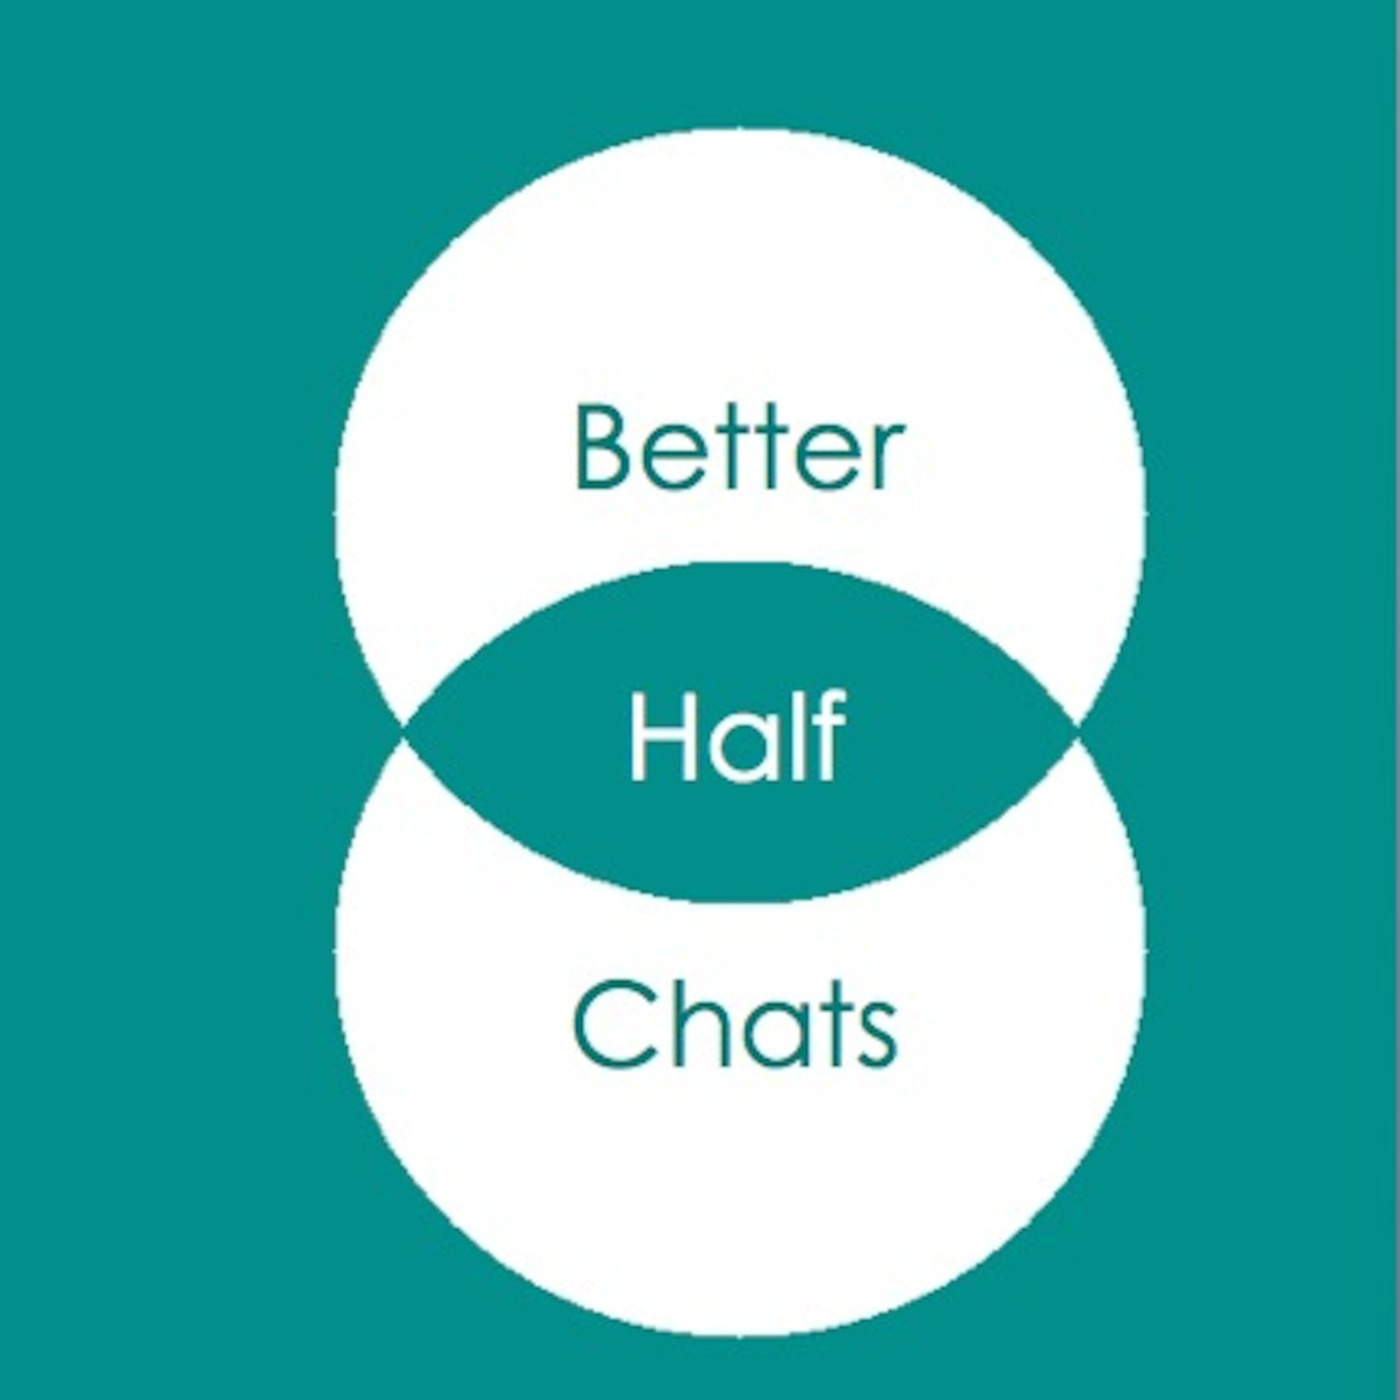 Better Half Chats